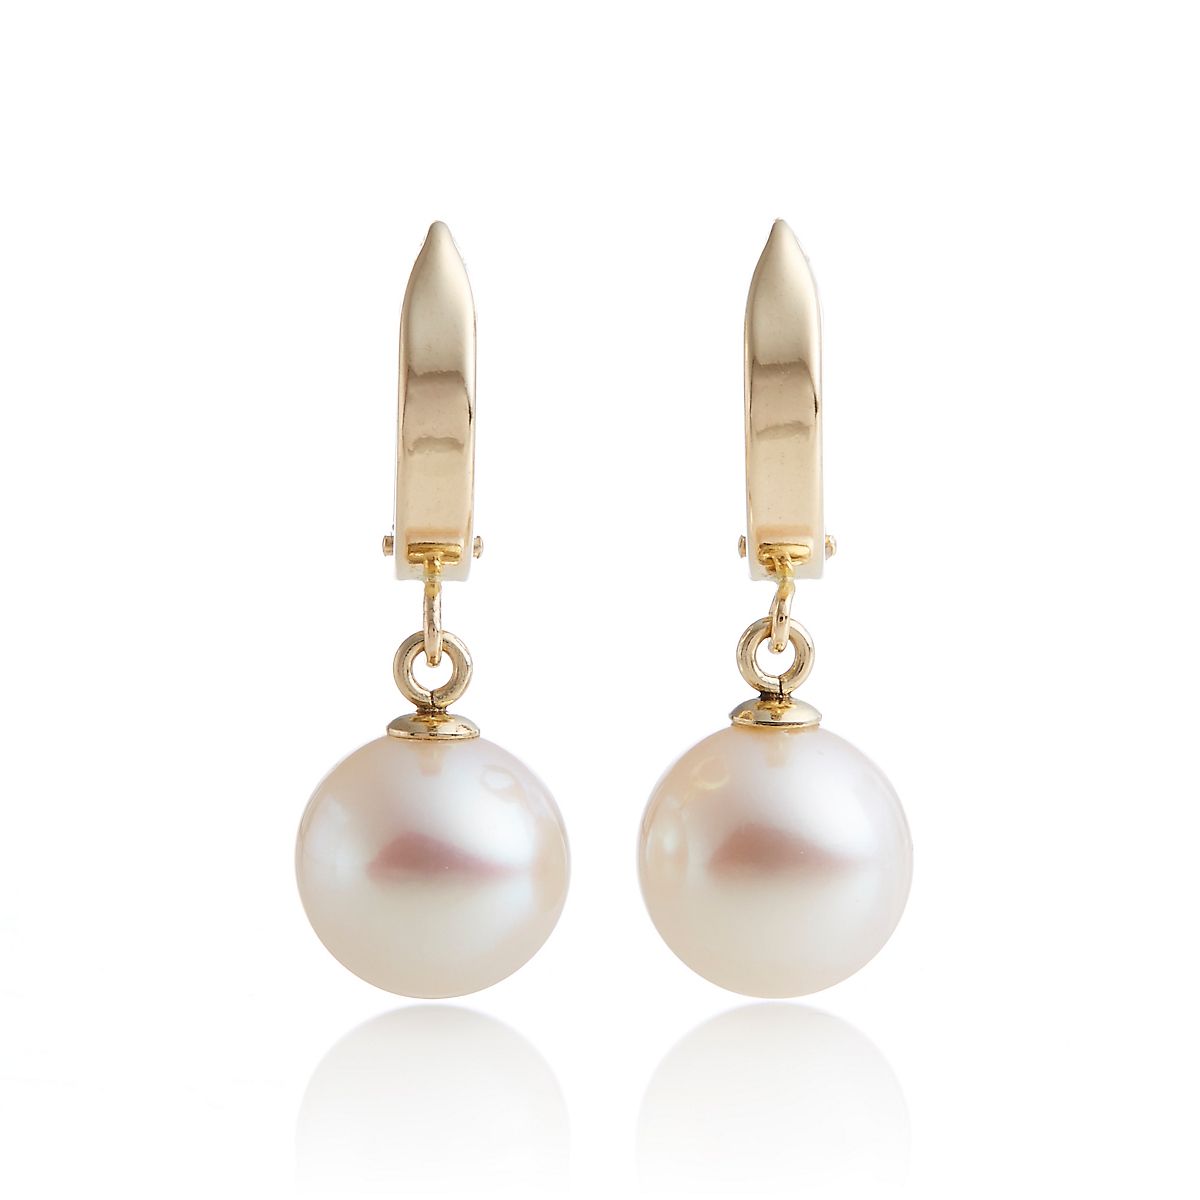 Gump's Gold Hoop & Freshwater Cultured Pearl Drop Earrings